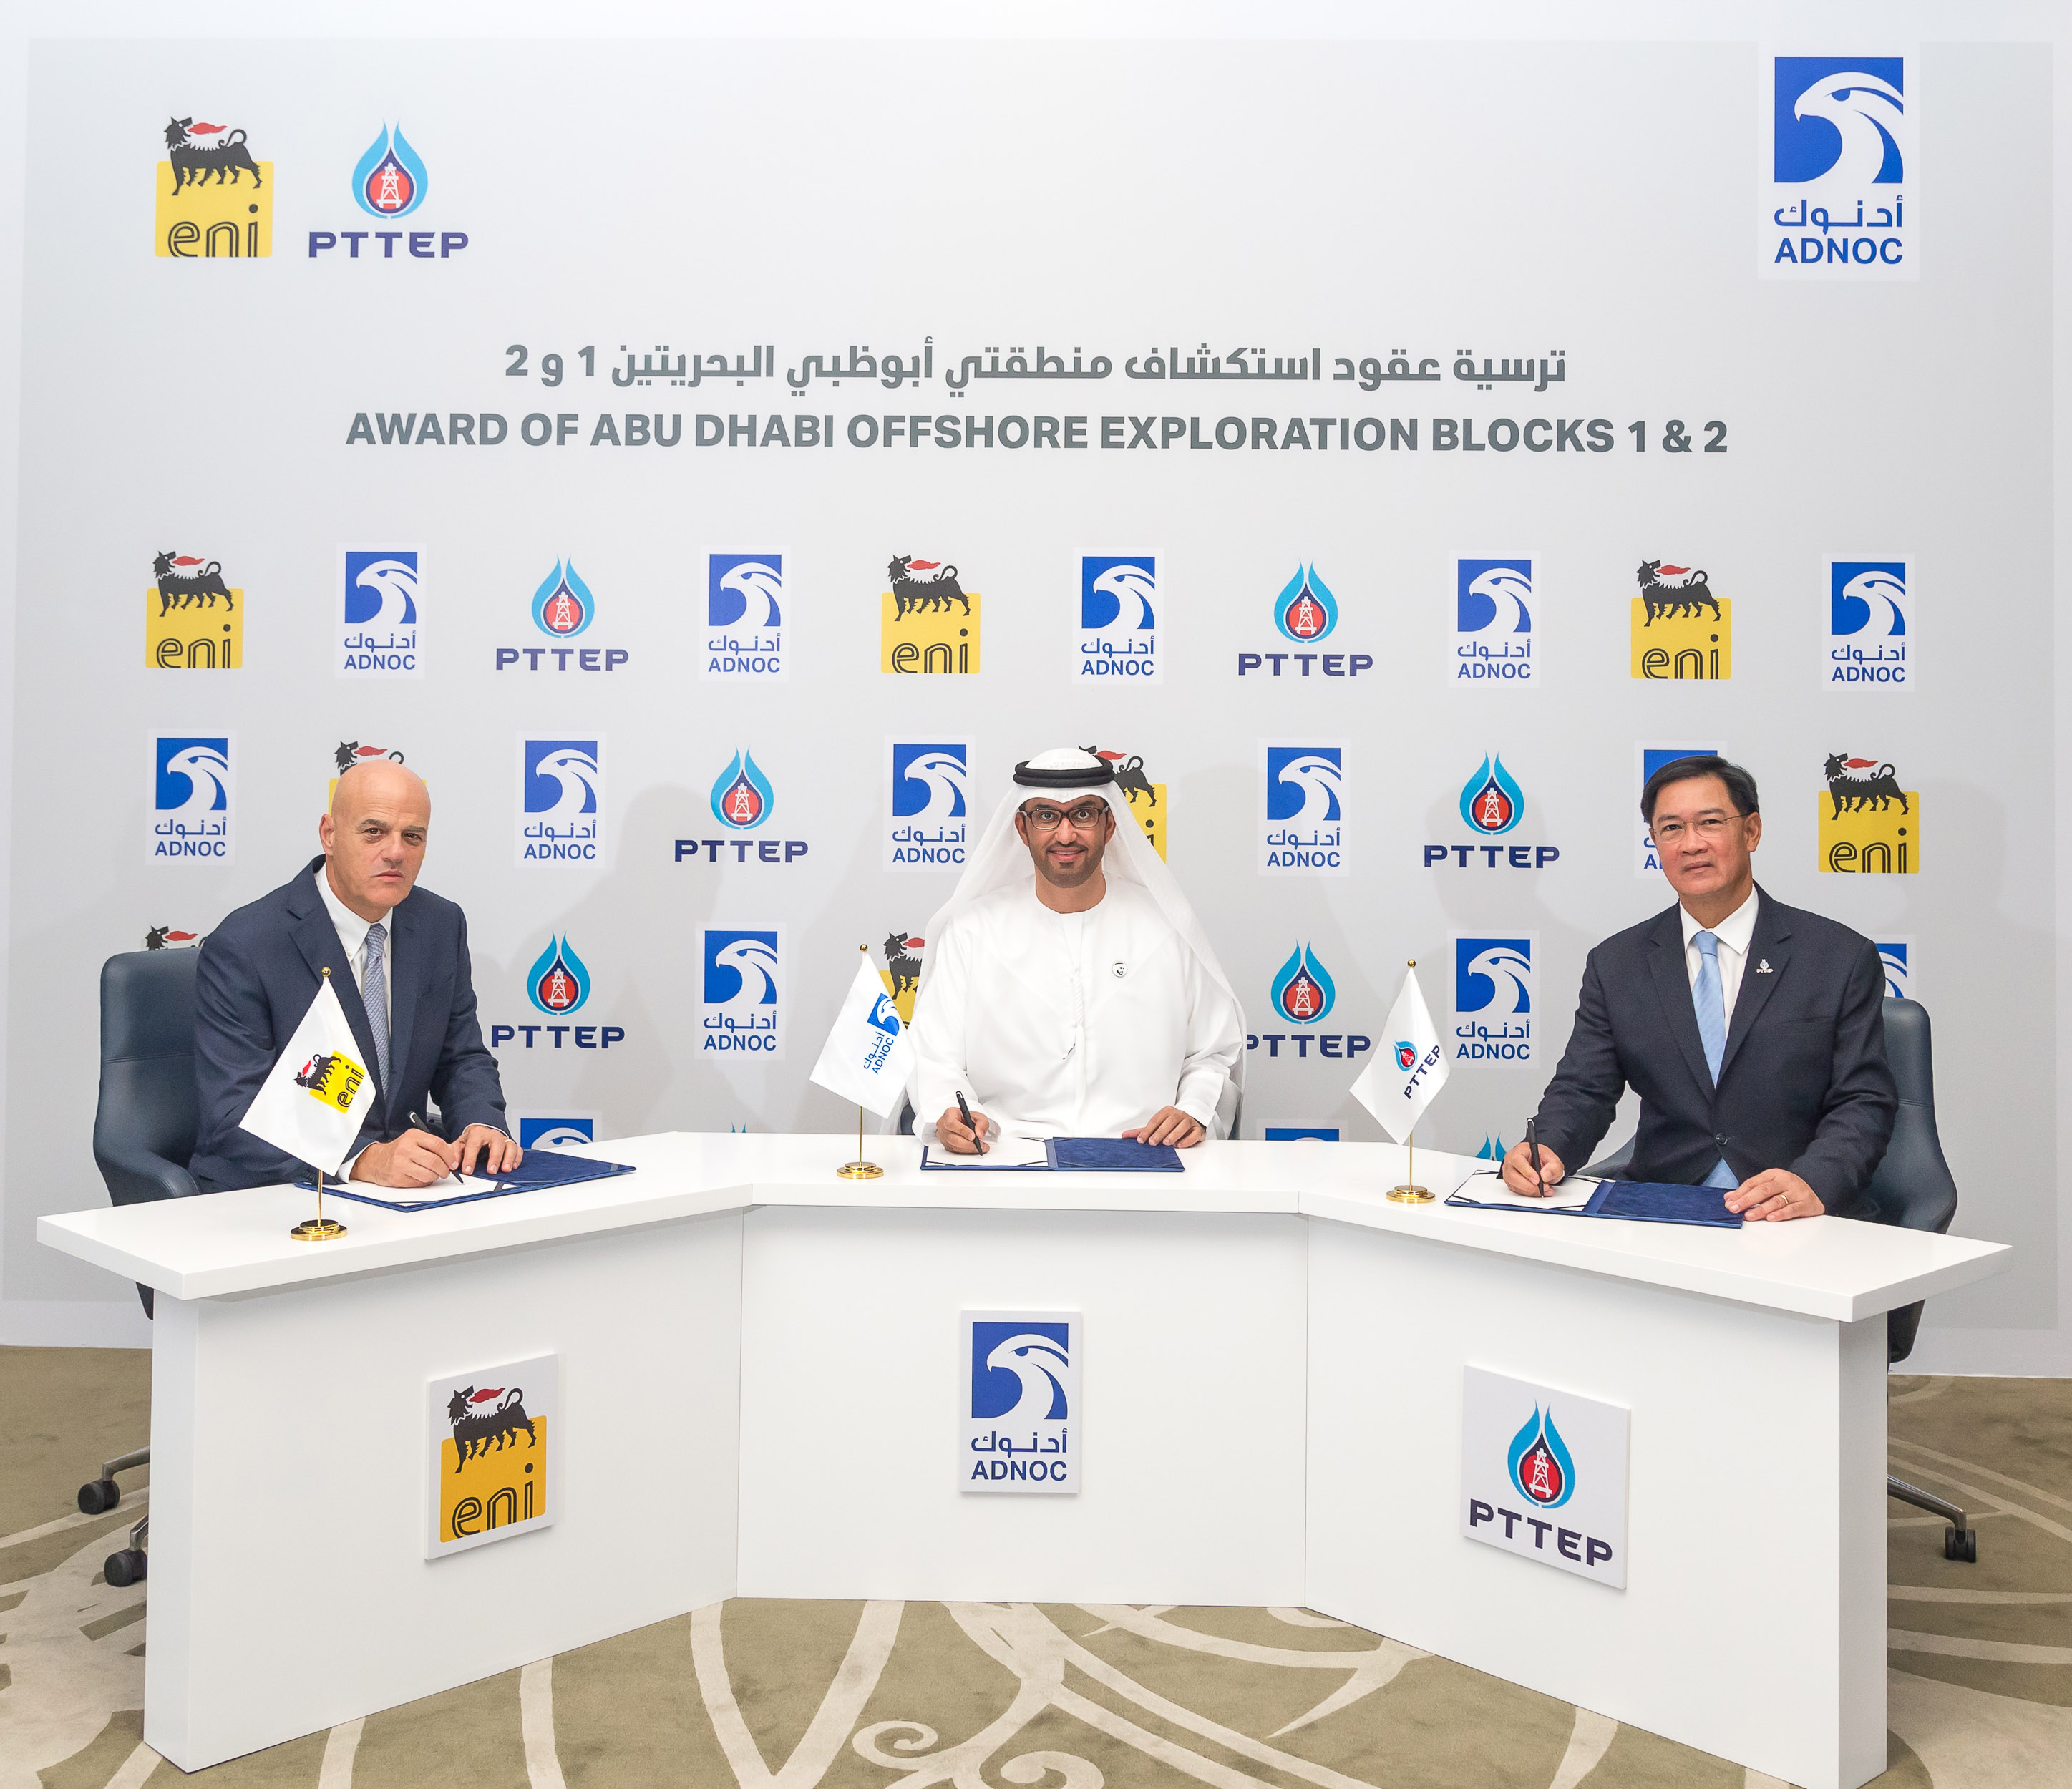 PTTEP marks its first-ever presence in UAE Awarded 2